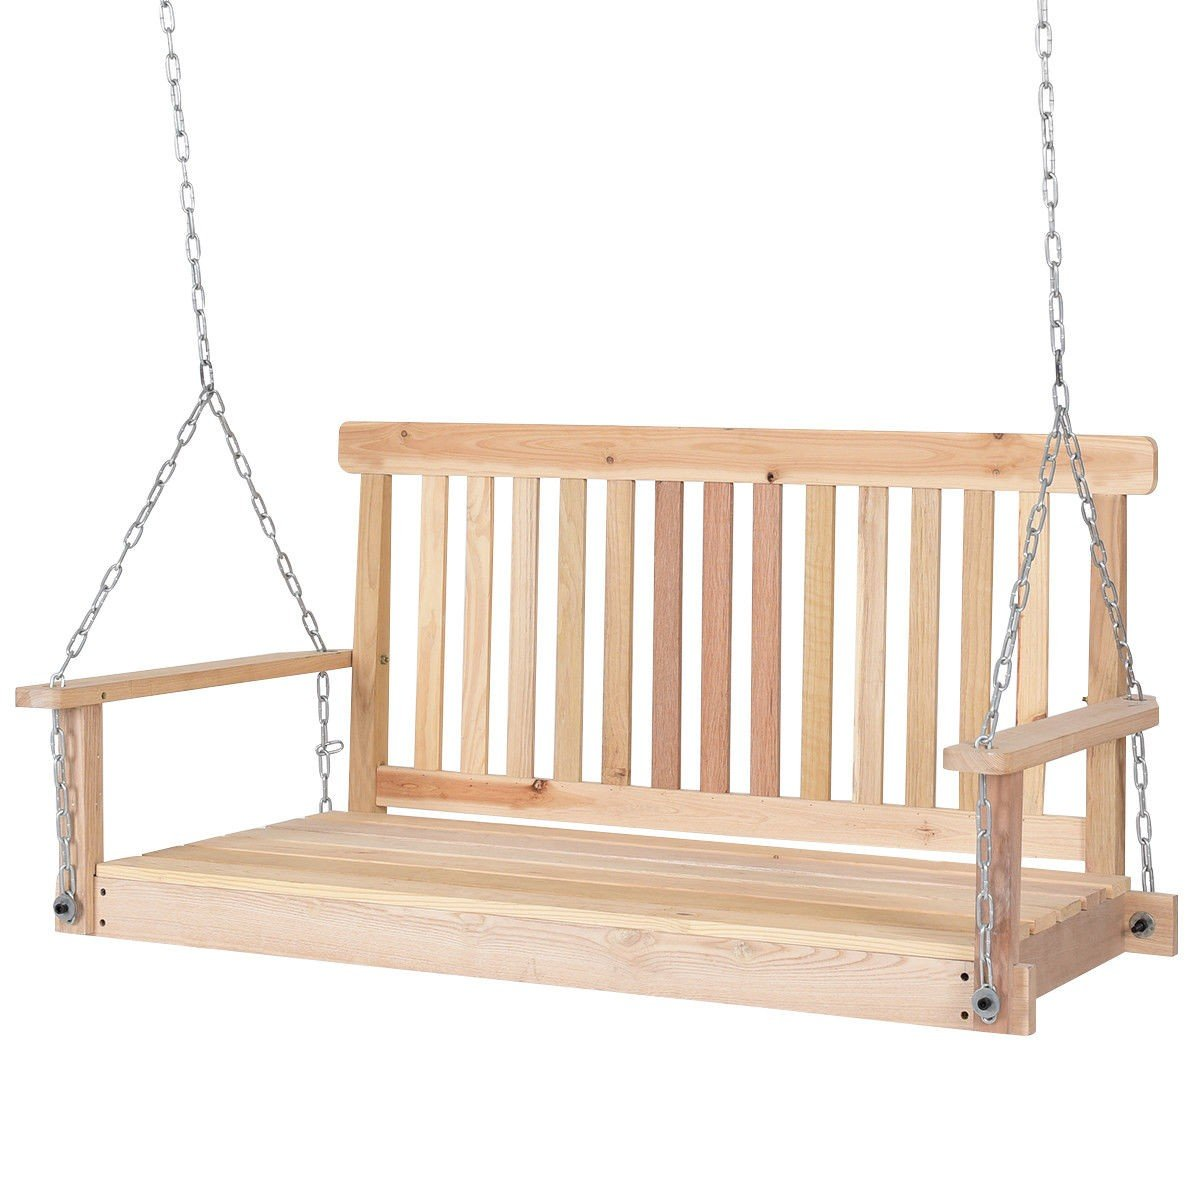 Wood Hanging Bench 2 Person Porch Loveseat Seating W Chains Porch